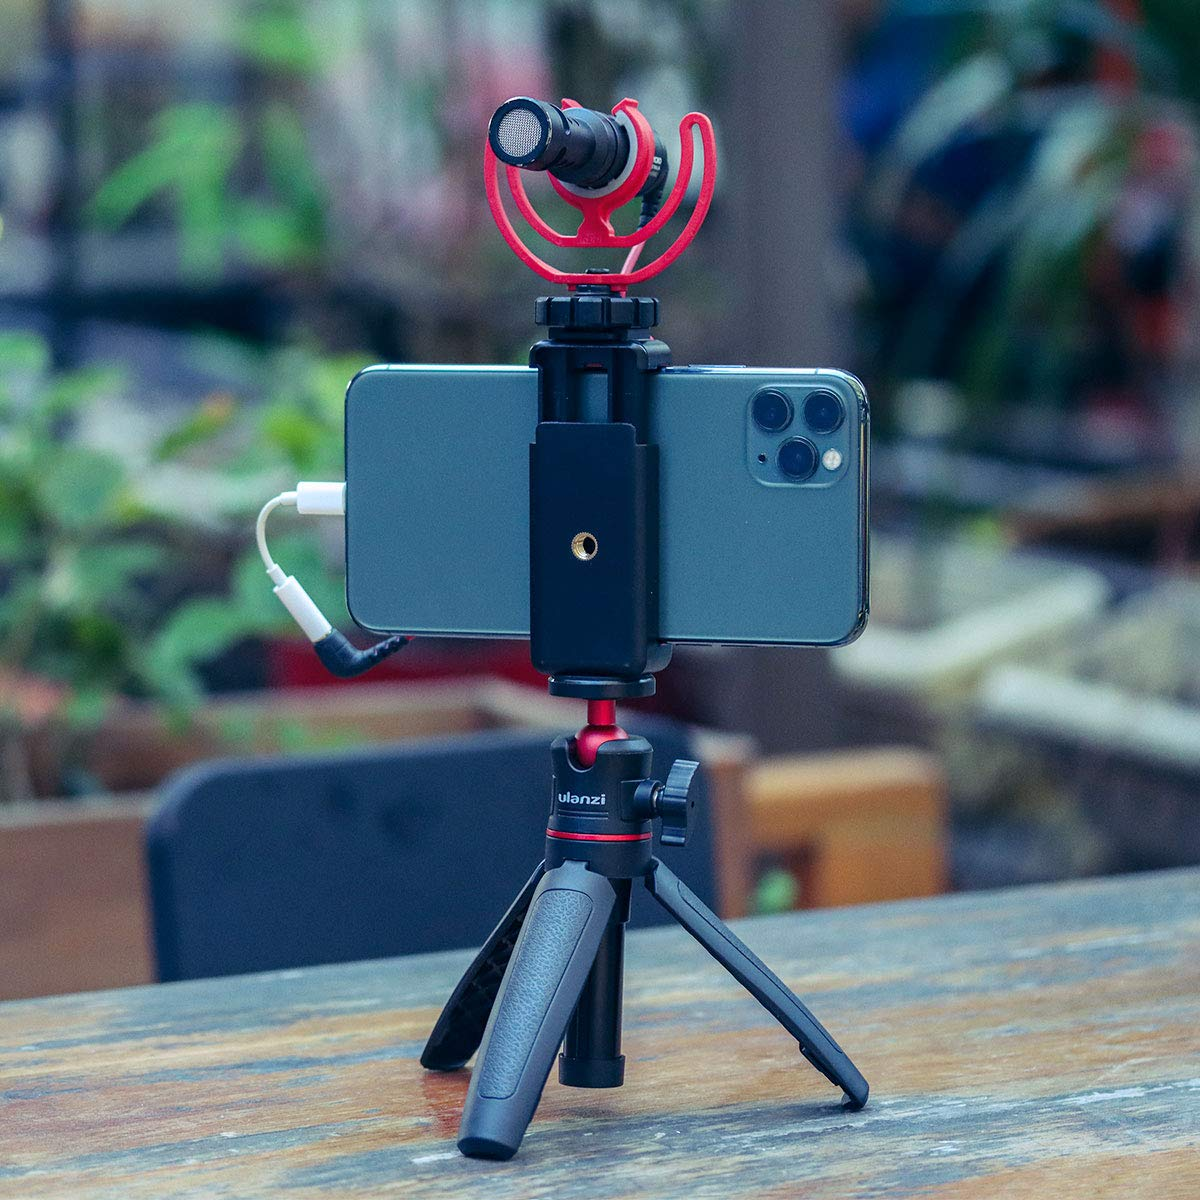 ULANZI MT-08 Extension Vlog Tripod Stand Handle Grip for iPhone 11 Pro Max Samsung Smartphone